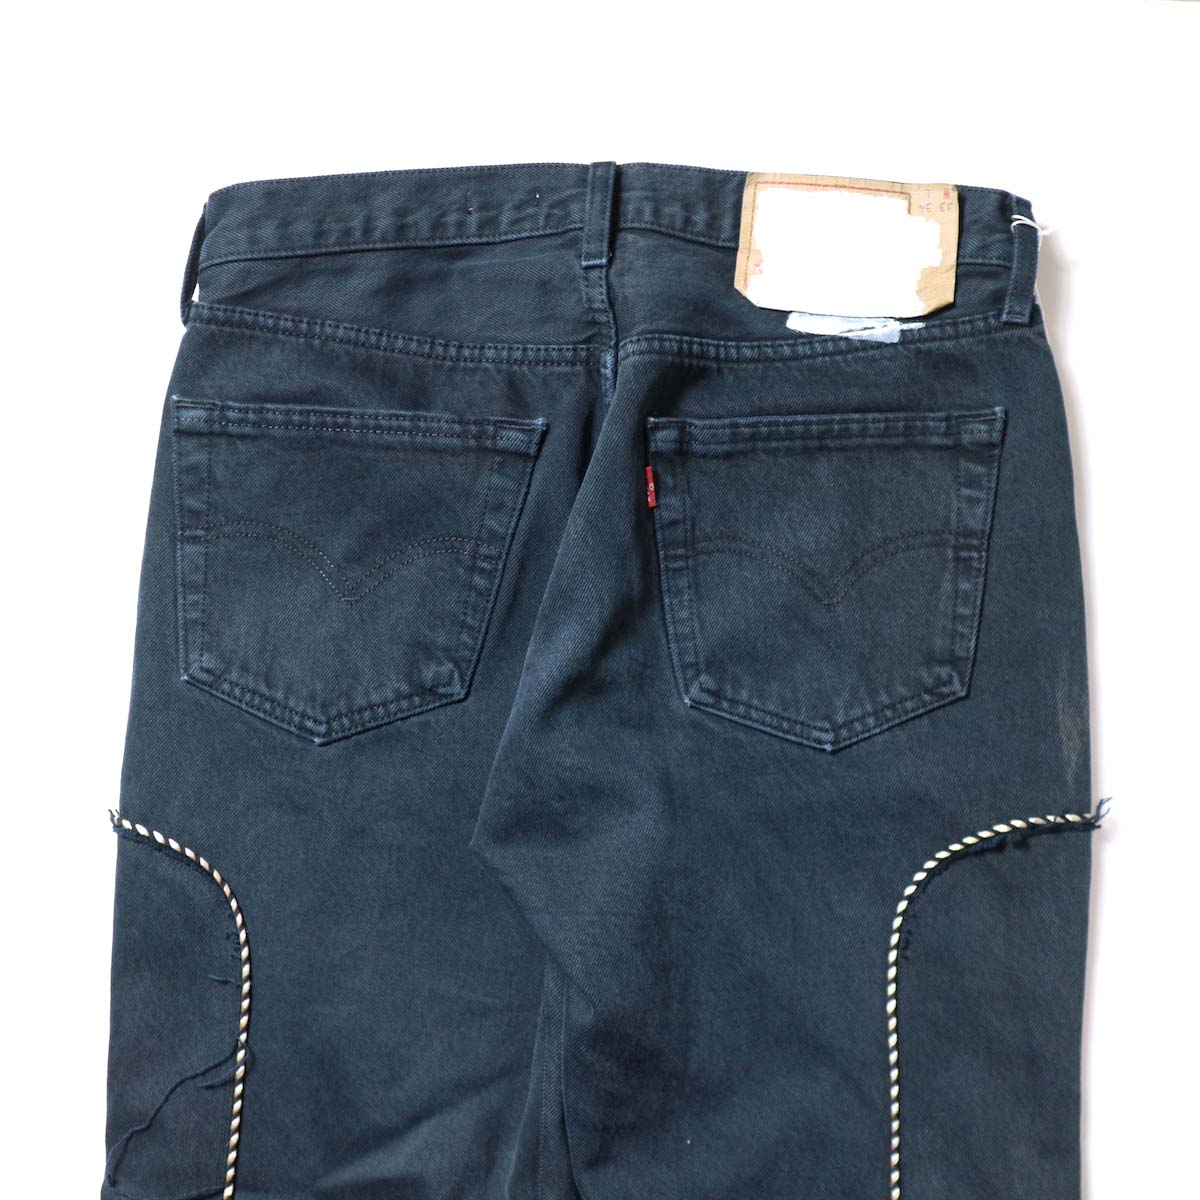 OLD PARK / Western Jeans Black (Msize-H)ヒップポケット